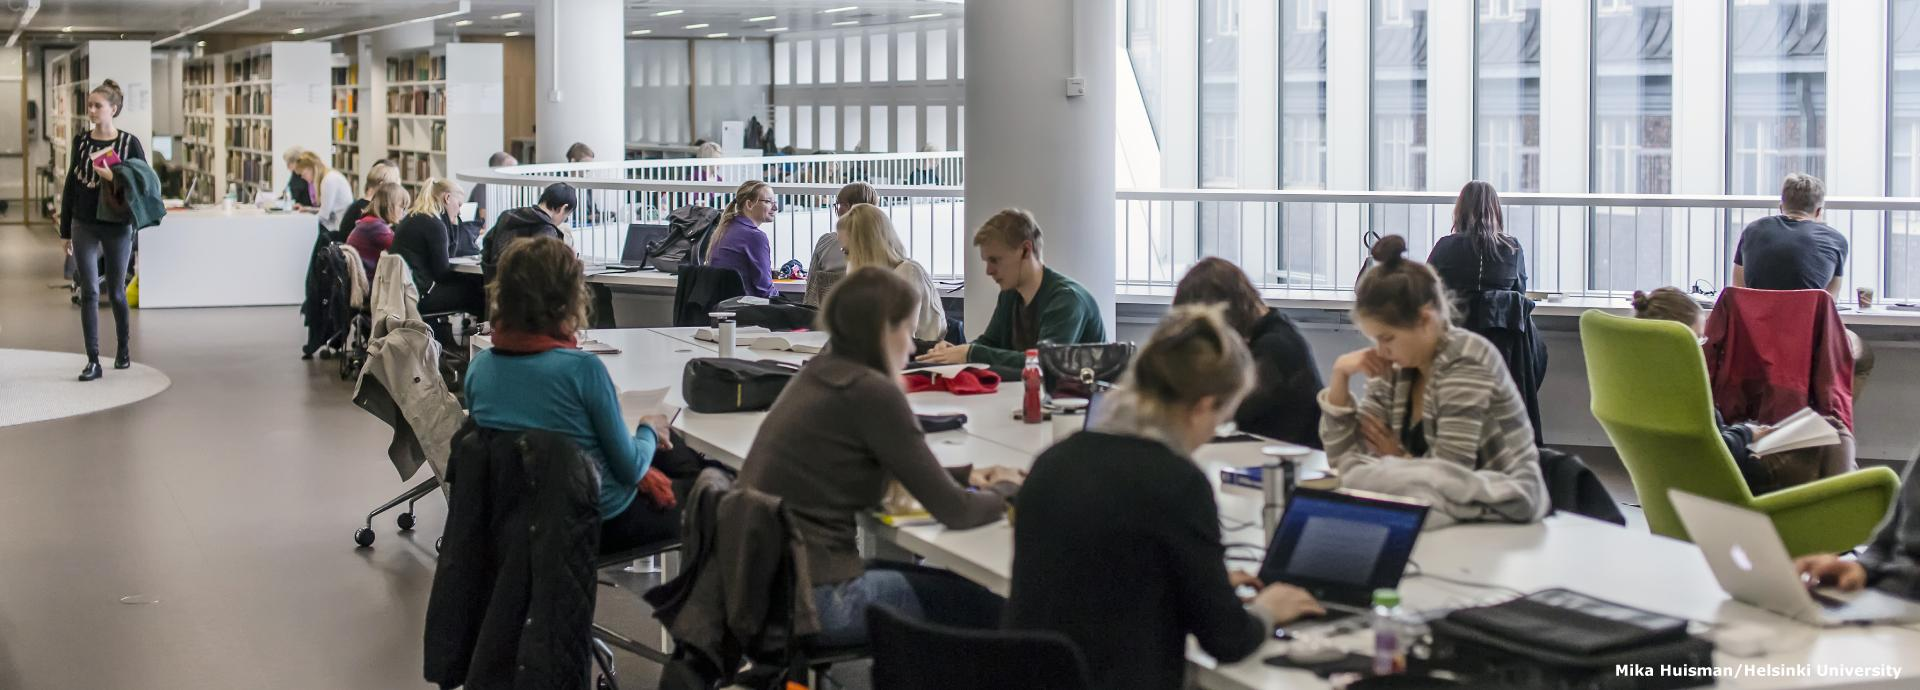 Students studying in the Helsinki University Main Library